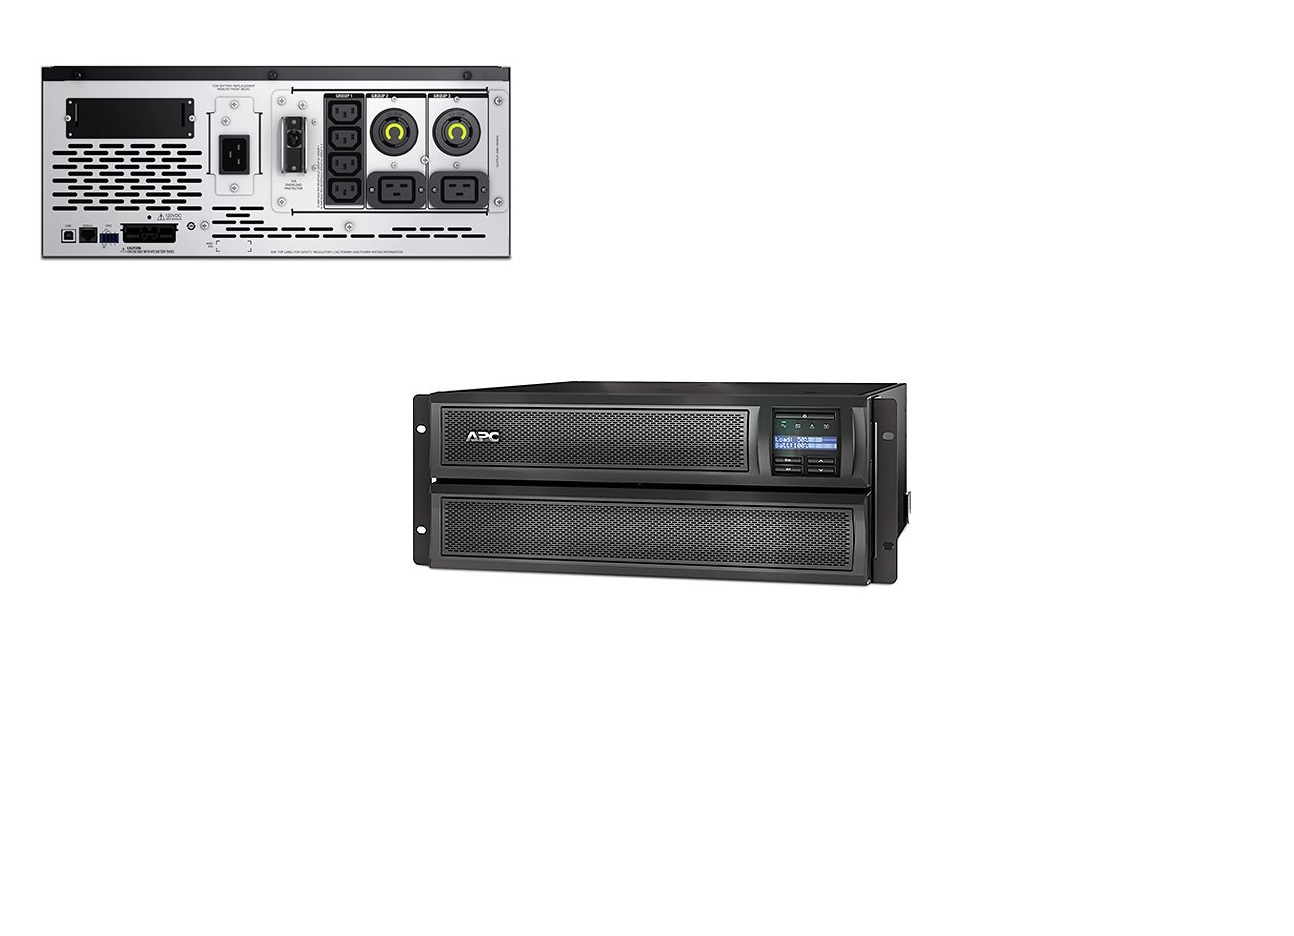 APC Smart-UPS X 3000VA 2700Watts Short Depth 4U Tower Rack Convertible LCD 208V SMX3000HVT